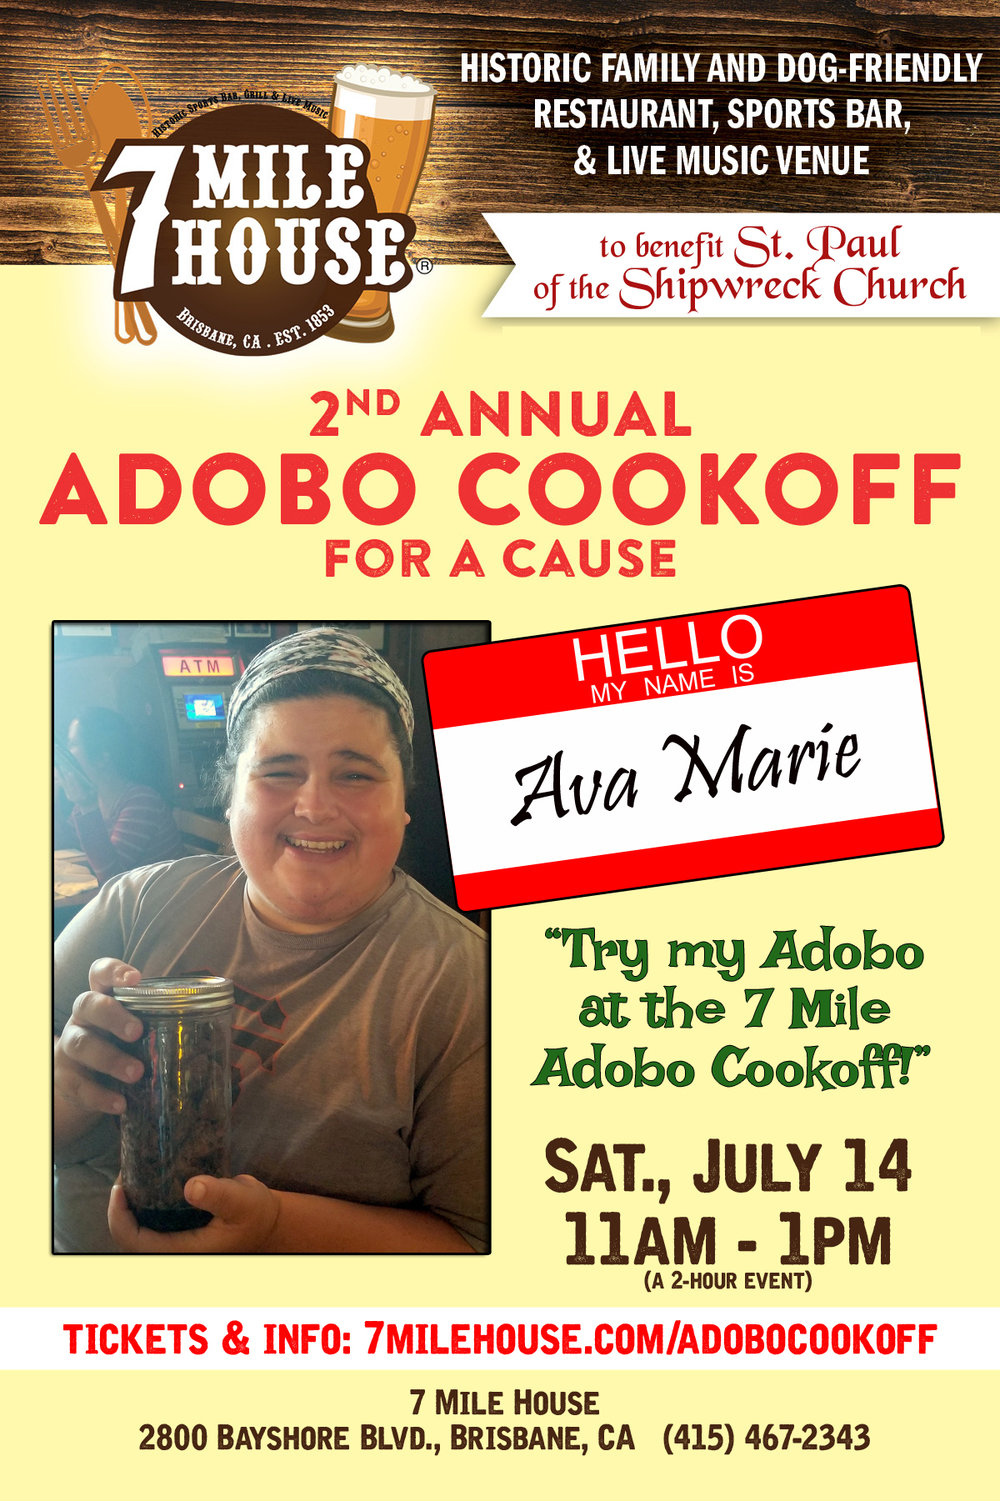 """Ava Marie - """"I'm a food blogger born with autism and a contest cook from South San Francisco California. I was born into a Swedish Norwegian Mexican household. My Adobo tastes good because I got this recipe from my longtime neighbor who is half Filipino. I am known for making chili in South San Francisco and won 3 honorable mentions as well as red, white and blue ribbon awards at the San Mateo County Fair culinary arts. I may be the underdog against these Filipino mama's but am super competitive and let's do this!!!"""""""